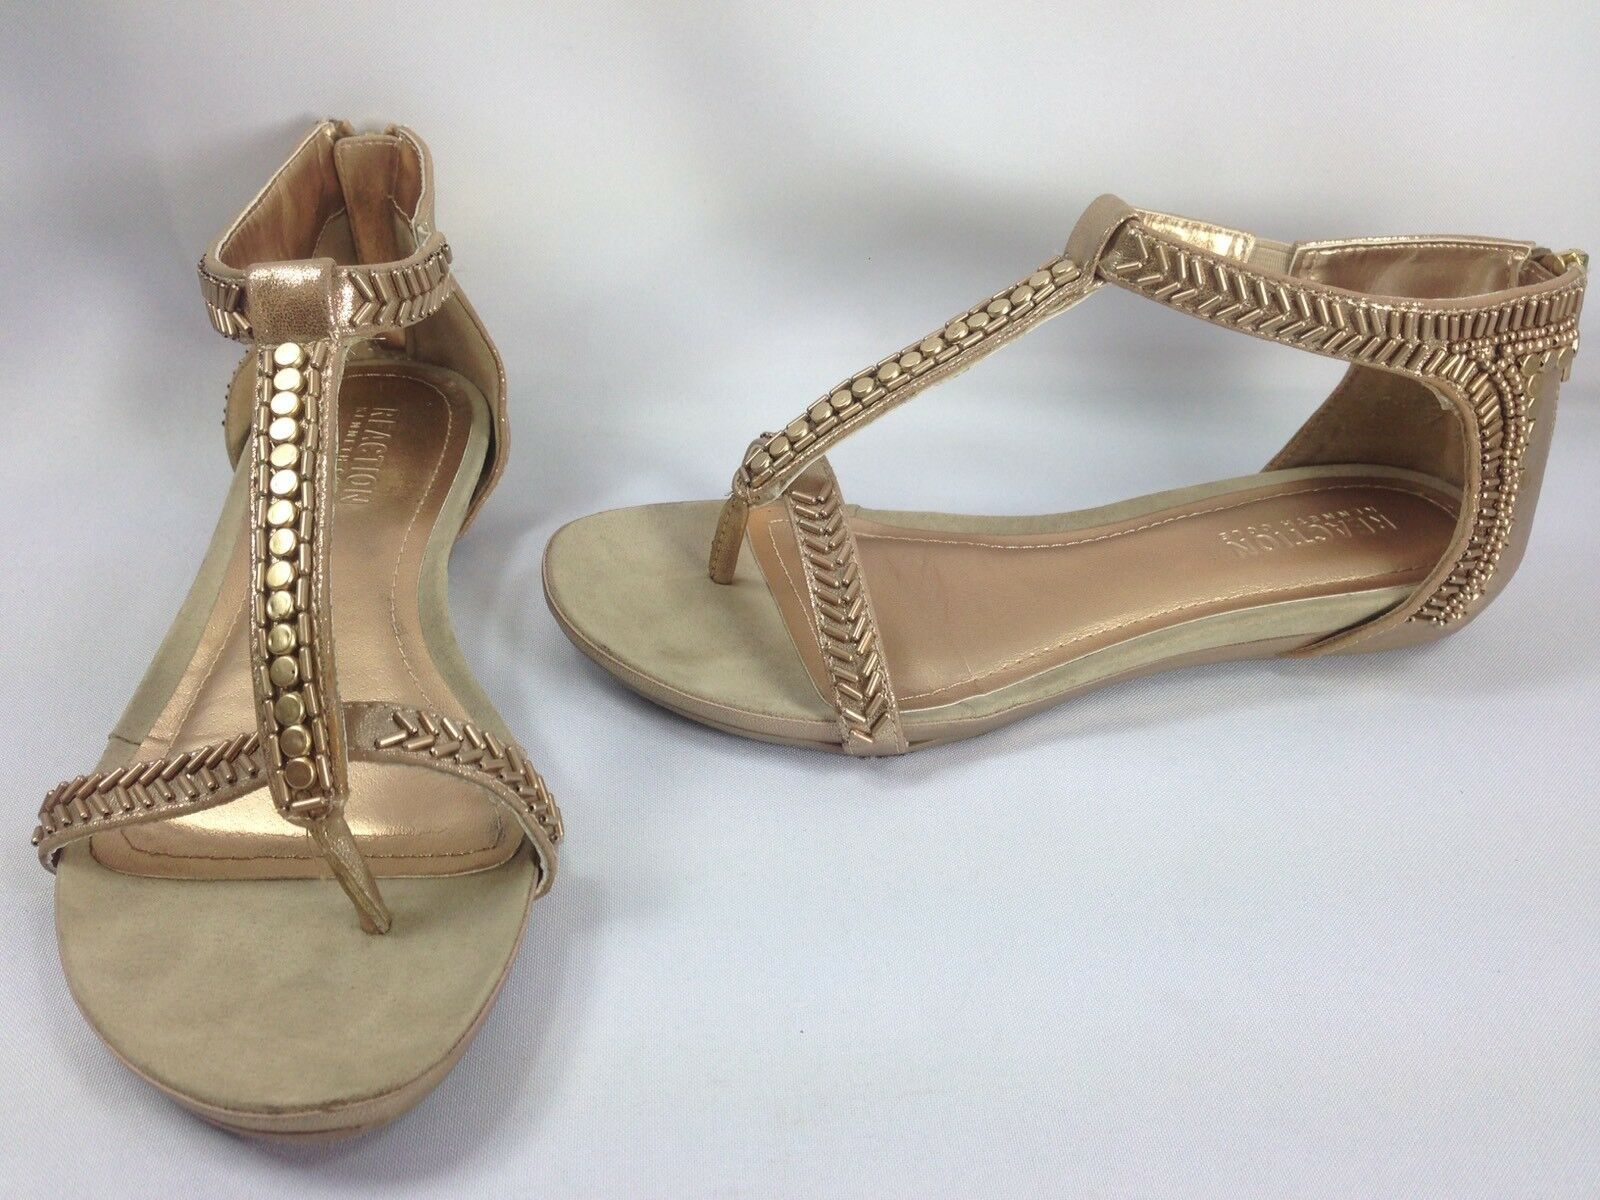 Kenneth Cole Reaction Lost You Flat Women Shoes Gold T-strap Flat You Sandals Sz 6 M a27b68